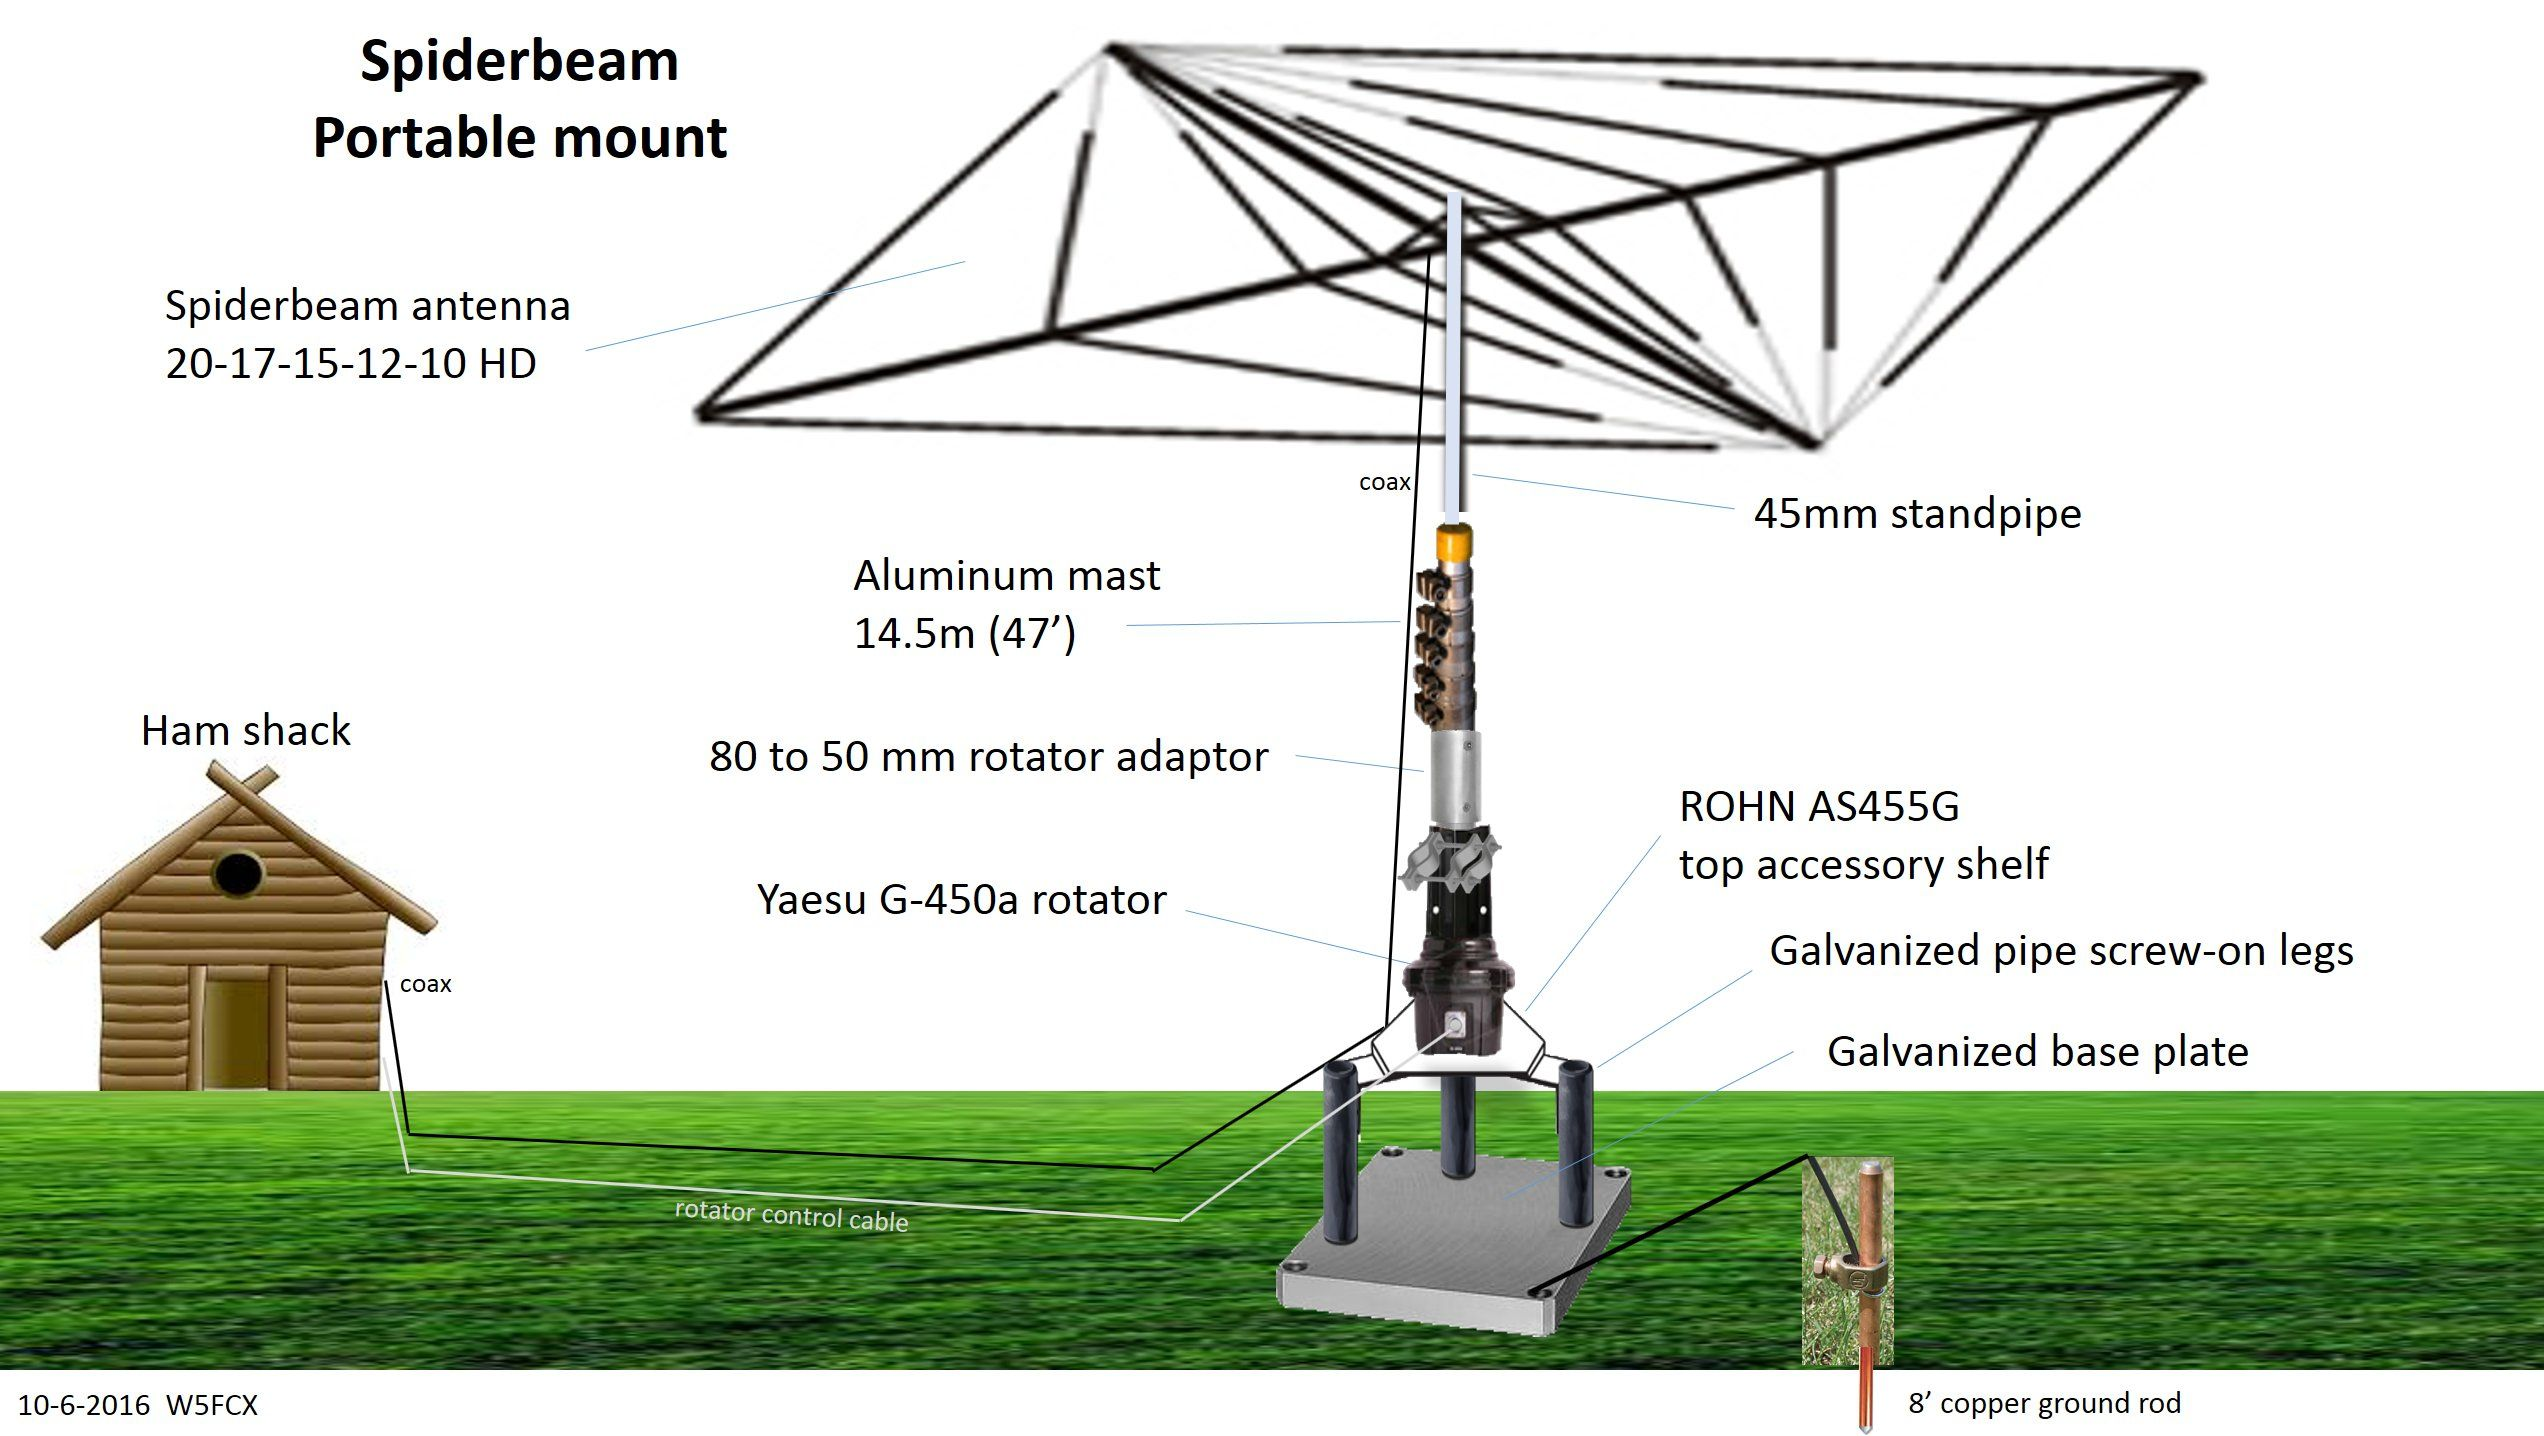 medium resolution of design of a portable 50 spiderbeam yagi antenna made of wire on a 47